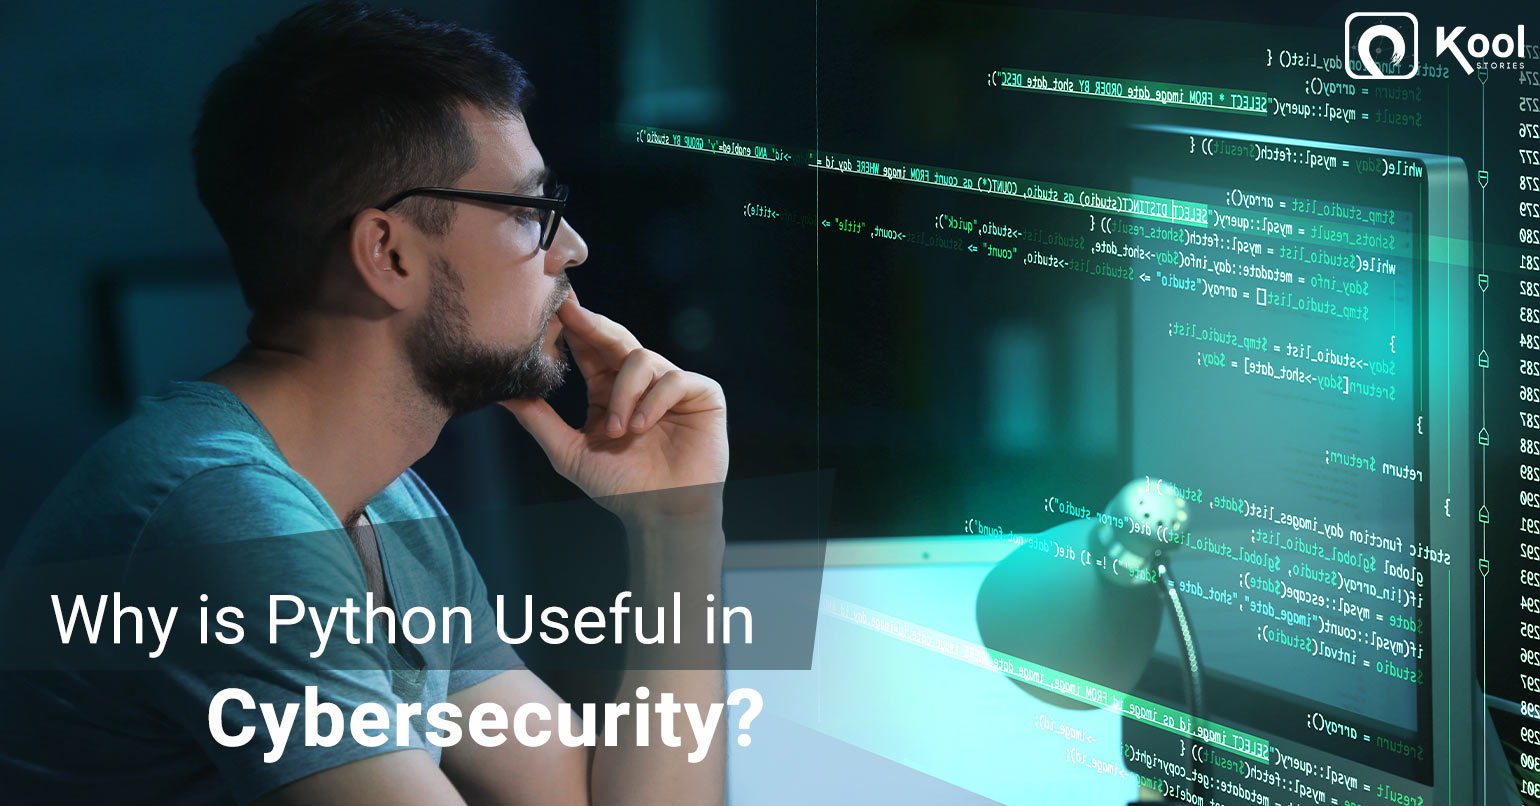 Why is Python Useful in Cybersecurity?